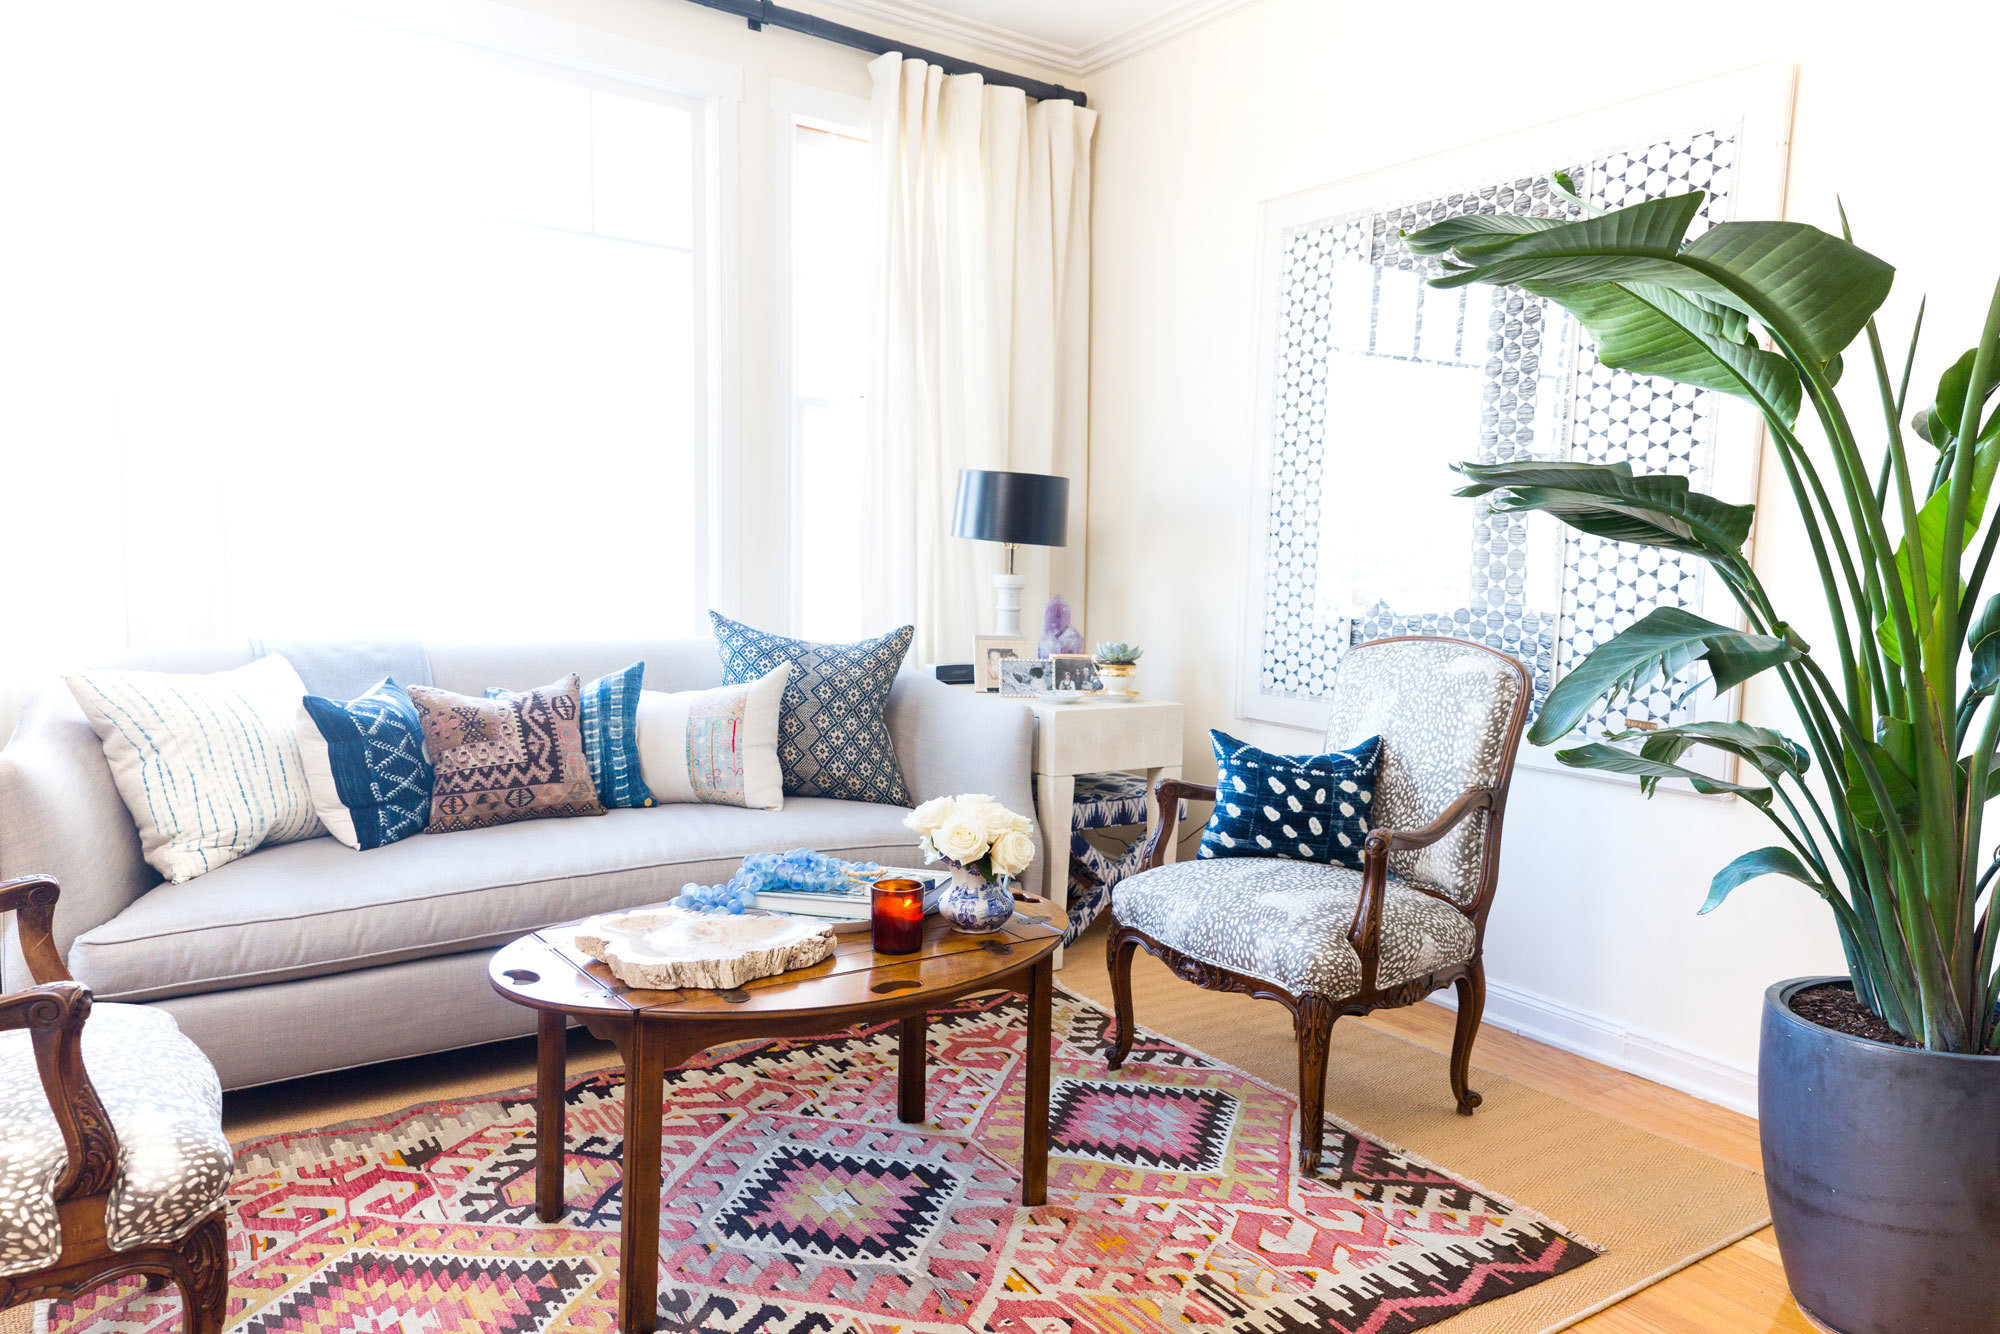 Living Room Spaces Small Space Living Hacks That Will Make Your Life So Much Easier